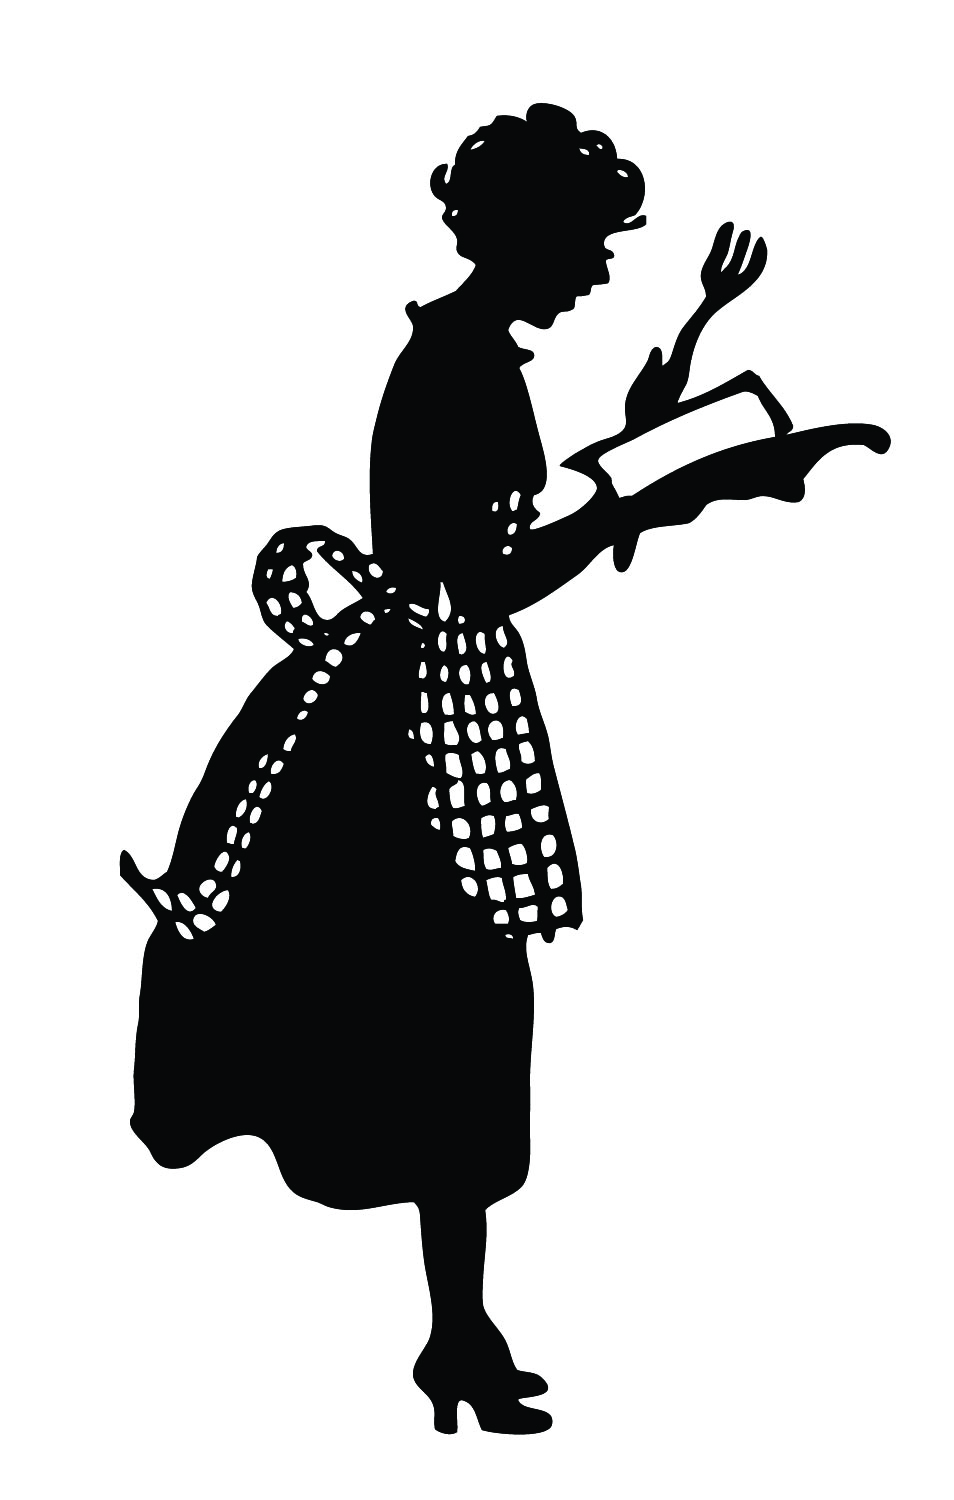 Vintage Silhouette - Cute Lady in Apron - The Graphics Fairy